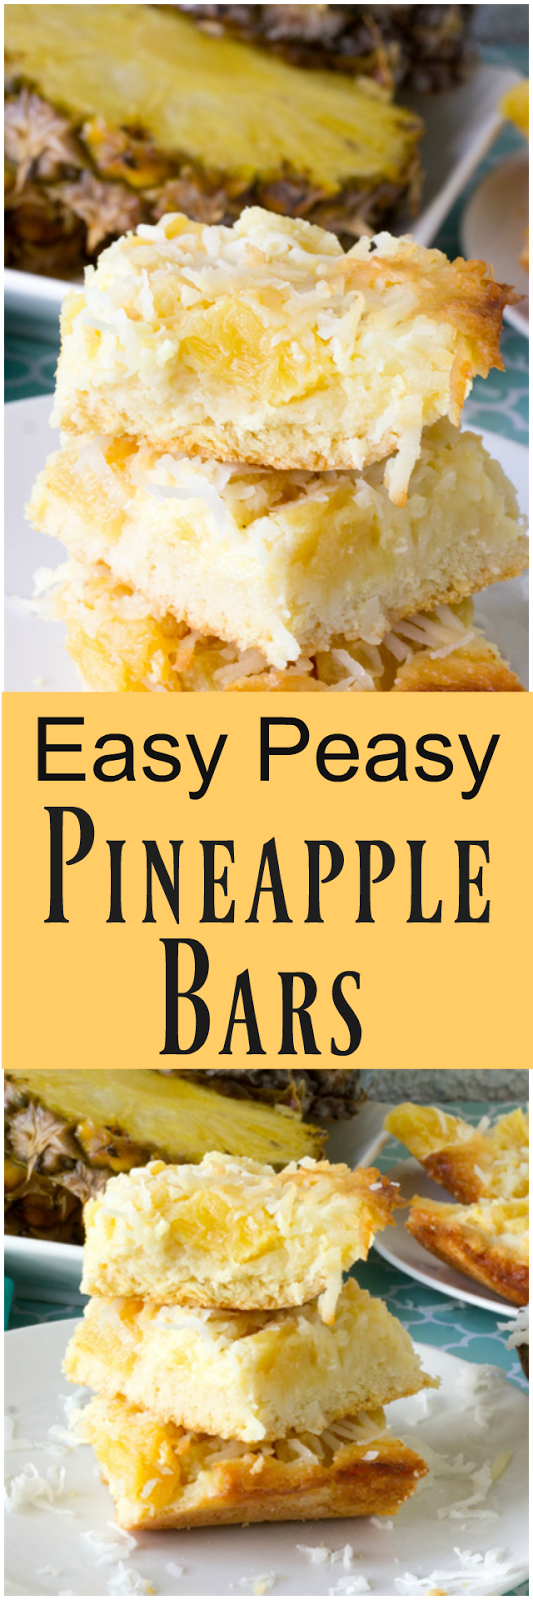 Easy Pineapple Bars